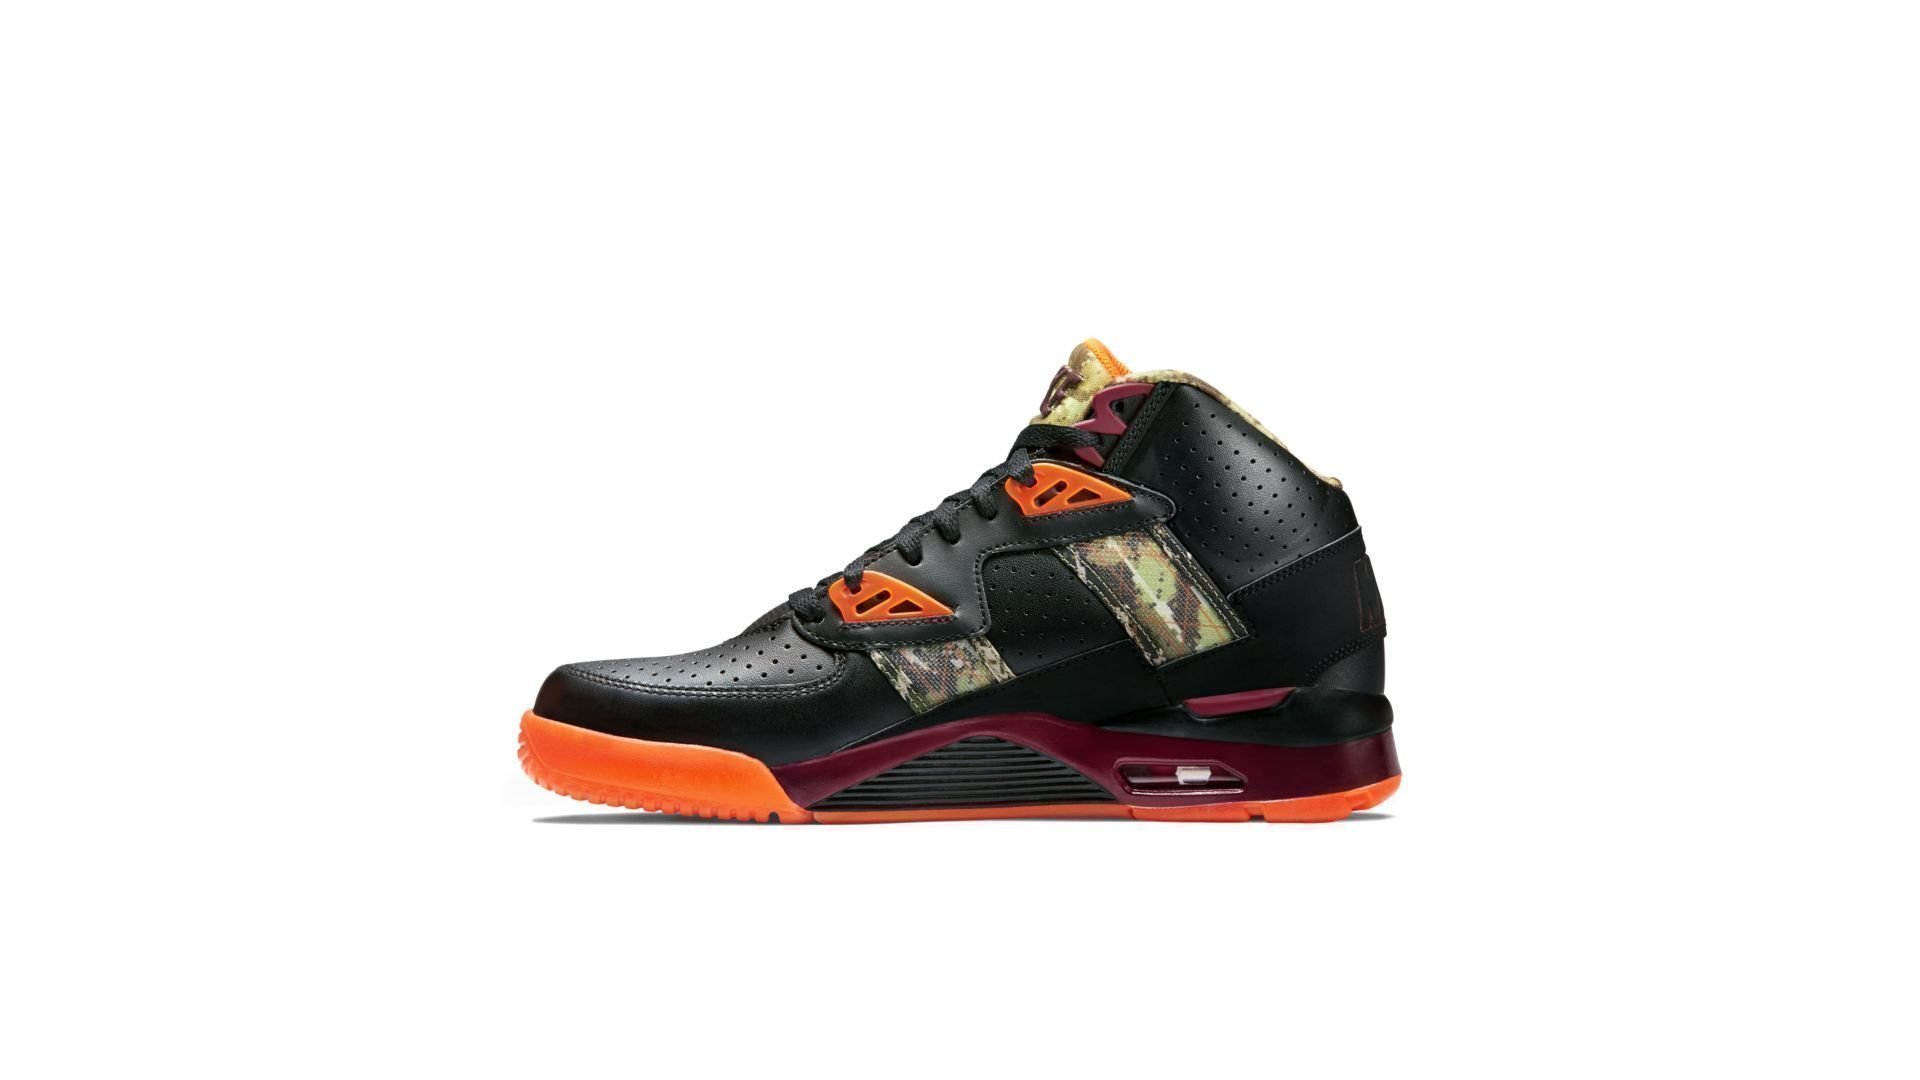 Nike Air Trainer SC High Camo Black Crimson (685151-001)